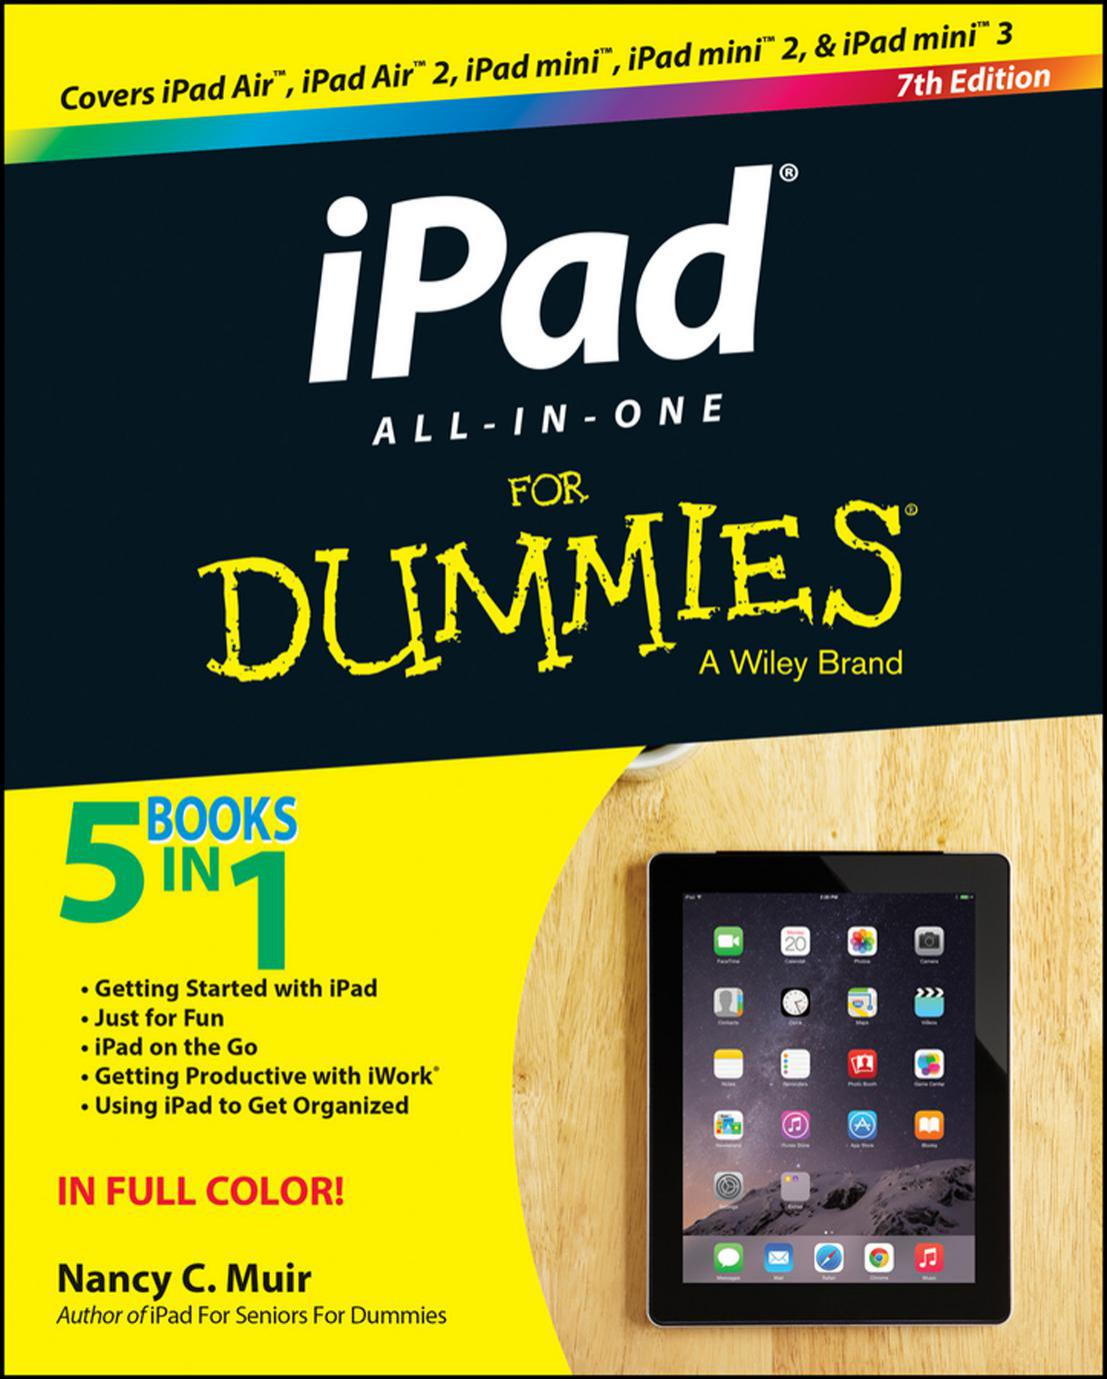 iPad All-in-One For Dummies, 7 edition free download